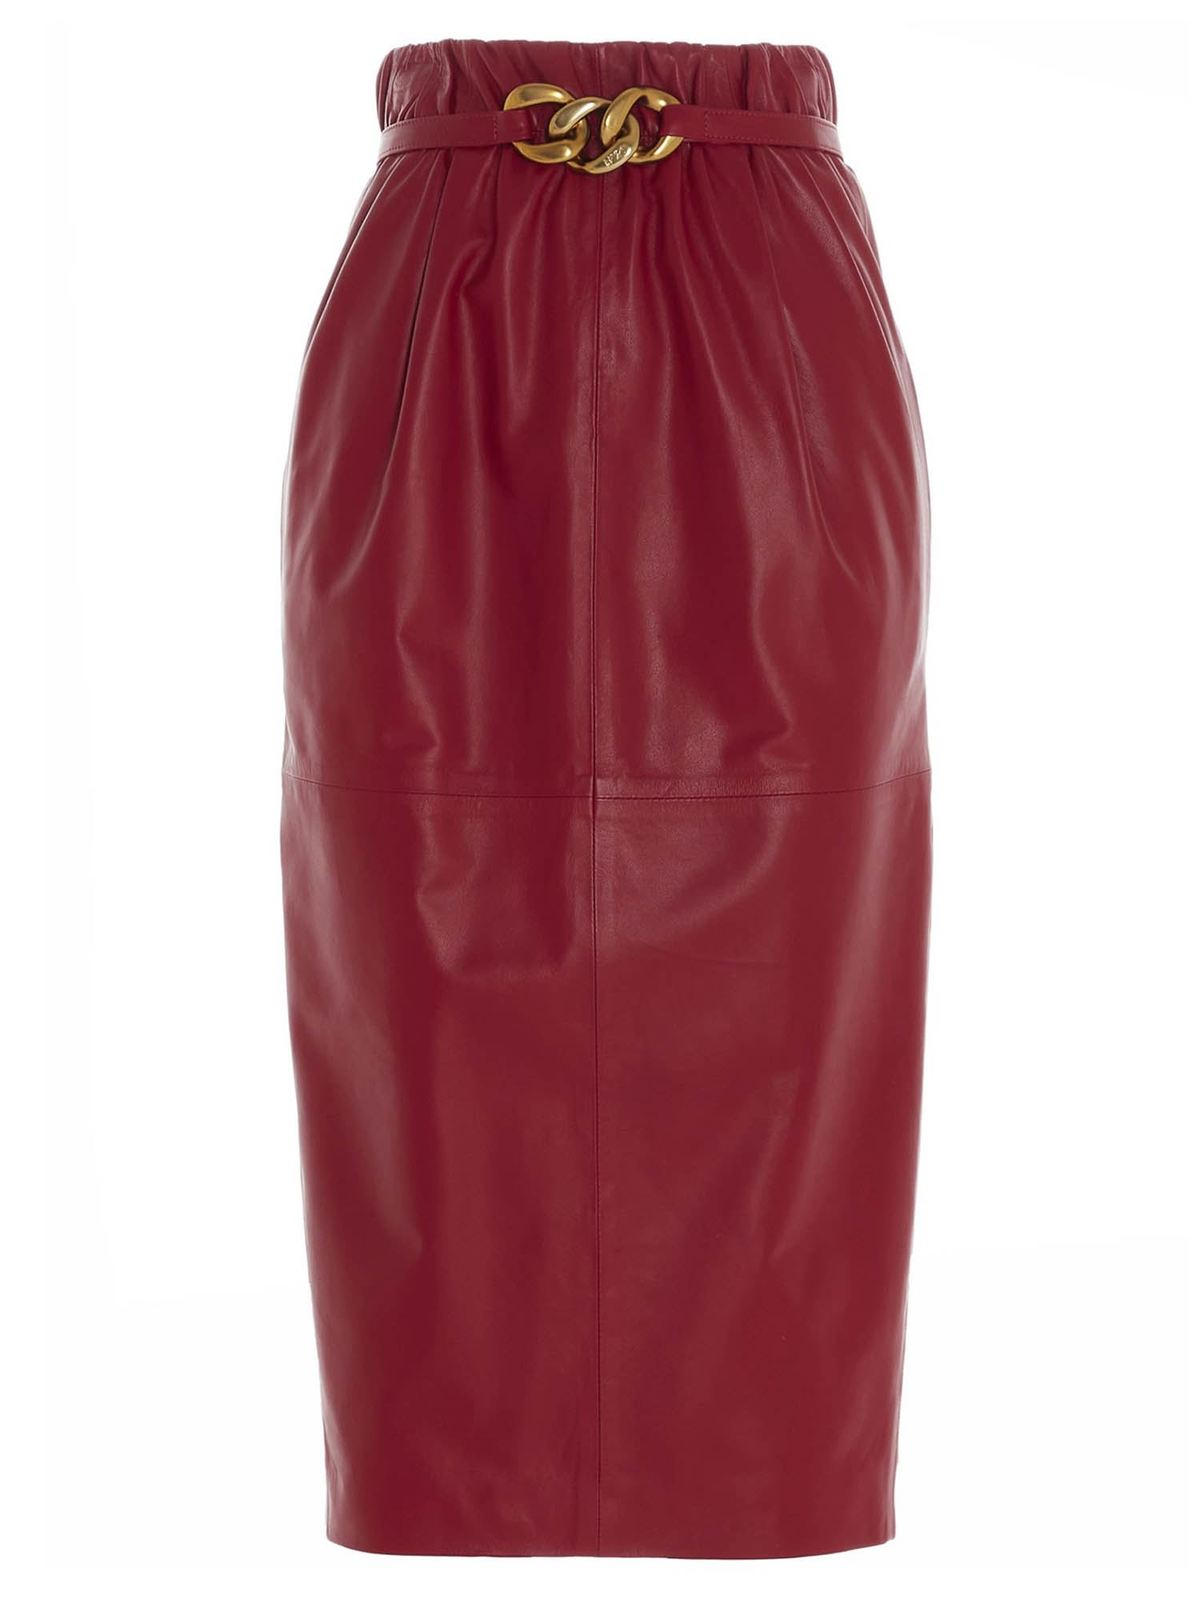 N°21 BELT PENCIL SKIRT IN RED